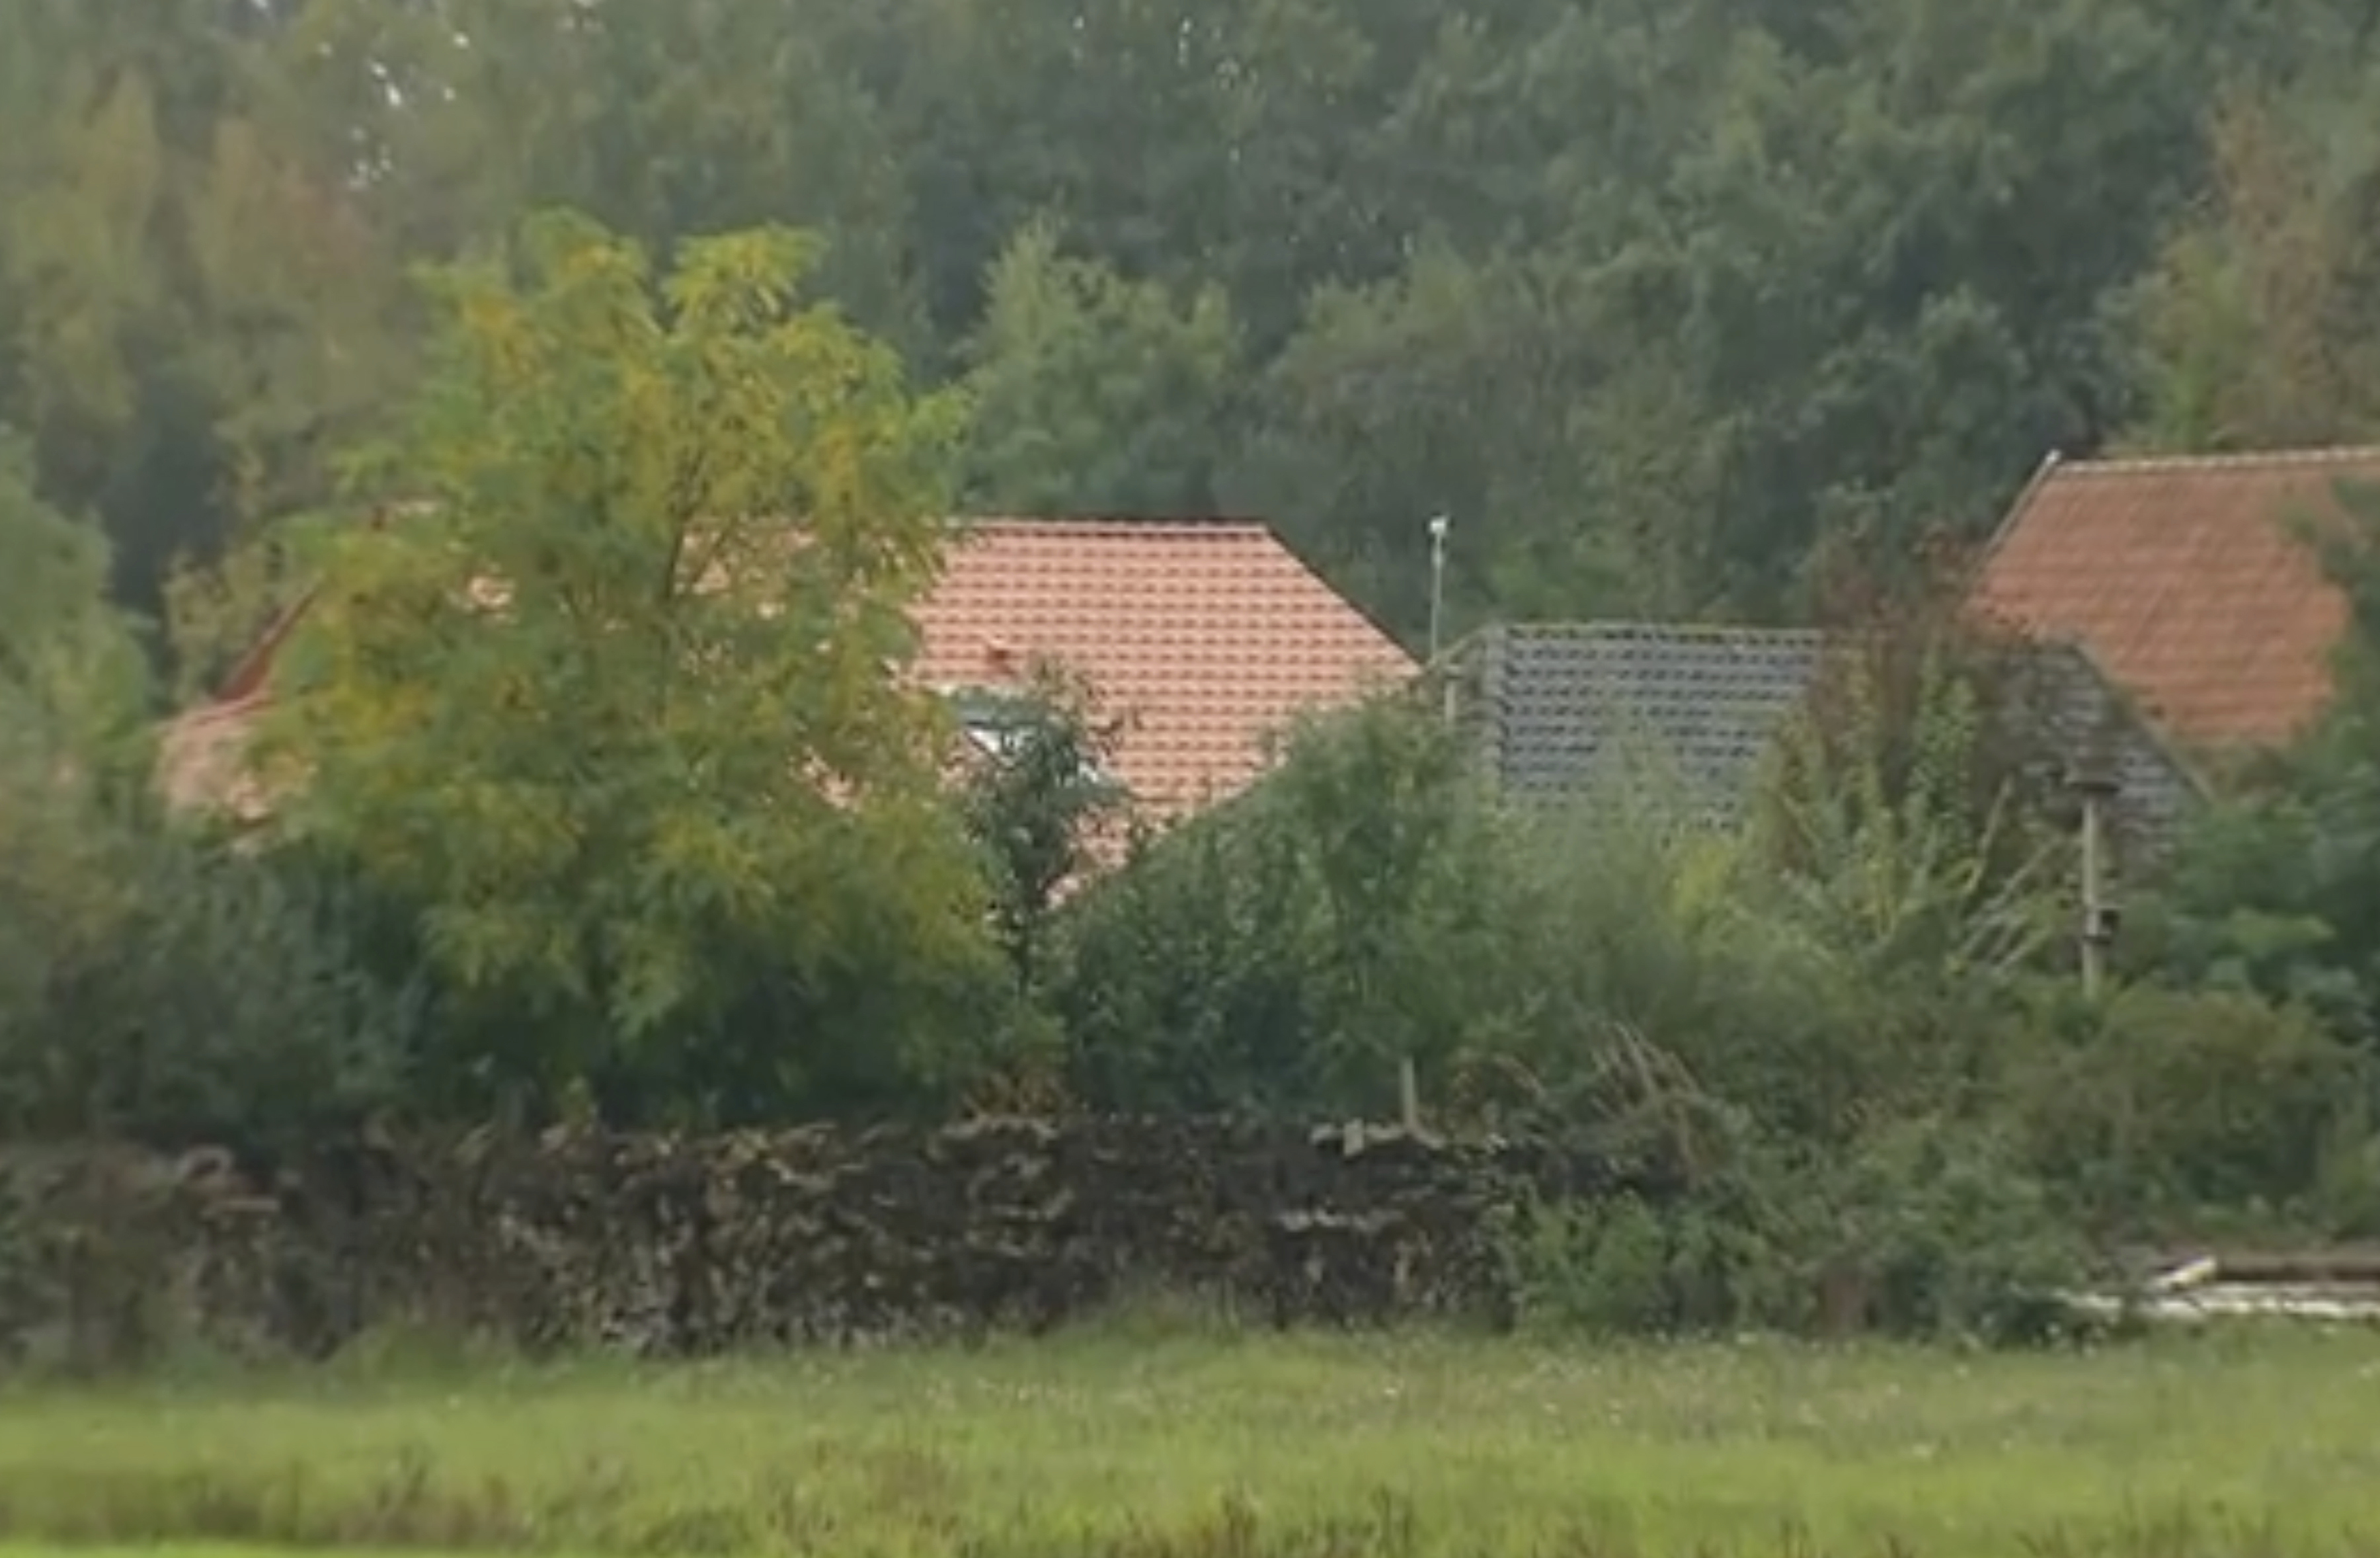 The small group of buildings after a family group were discovered to be living in secluded conditions in Ruinerwold, 130 kilometers (80 miles) northeast of Amsterdam, Netherlands.